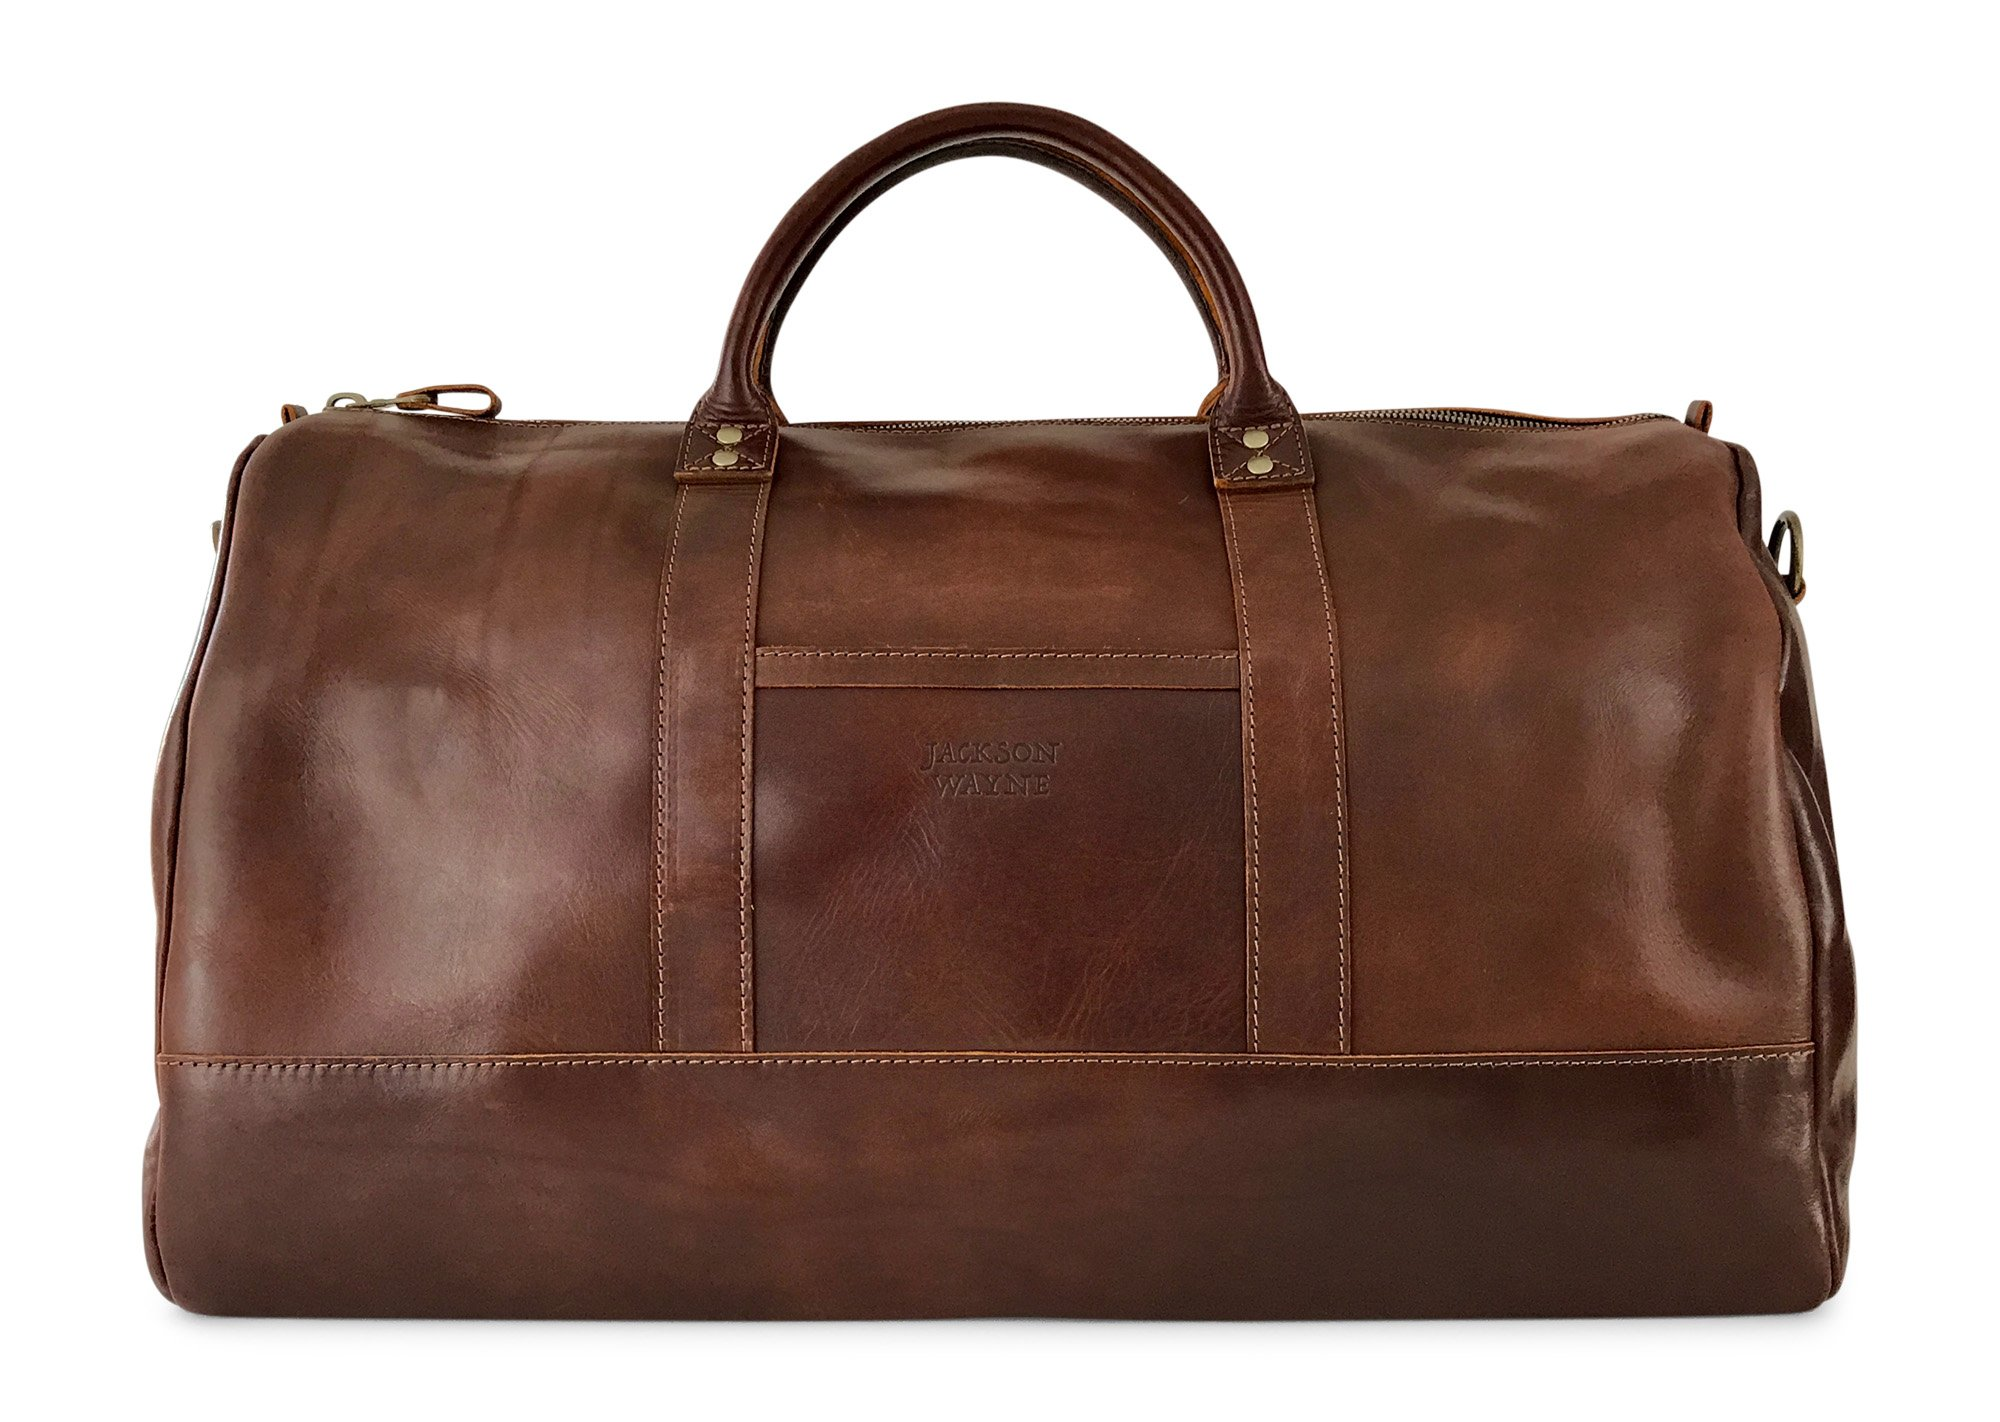 Vintage Full Grain Leather Duffle Bag & Weekend Carryall by Jackson Wayne (Vintage Brown) by Jackson Wayne (Image #3)